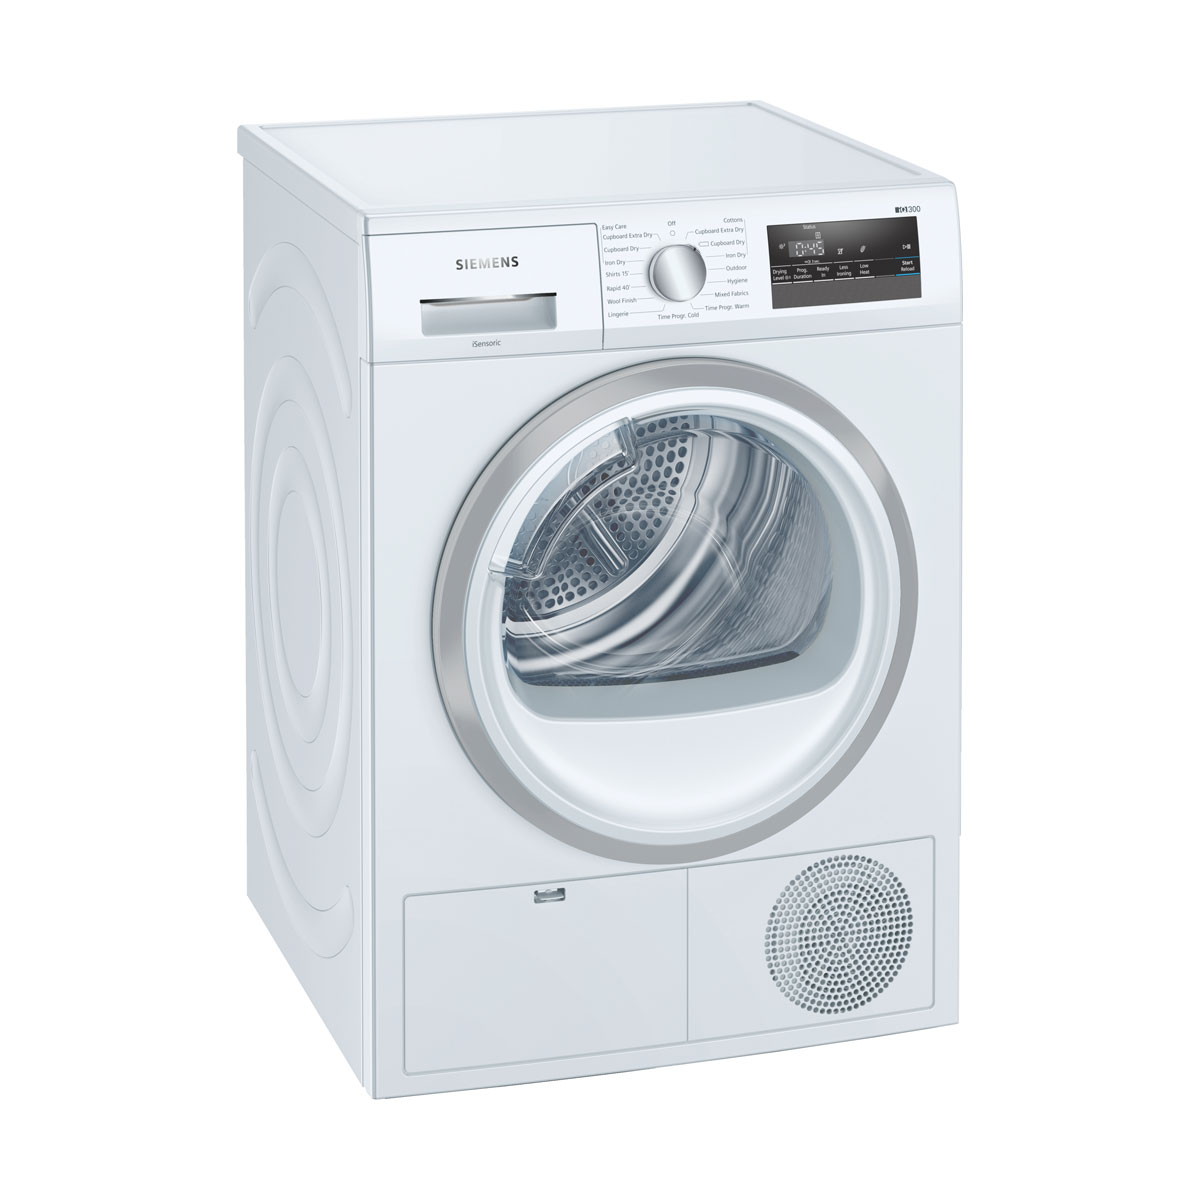 An image of WT45N202GB 8kg Condenser Tumble Dryer